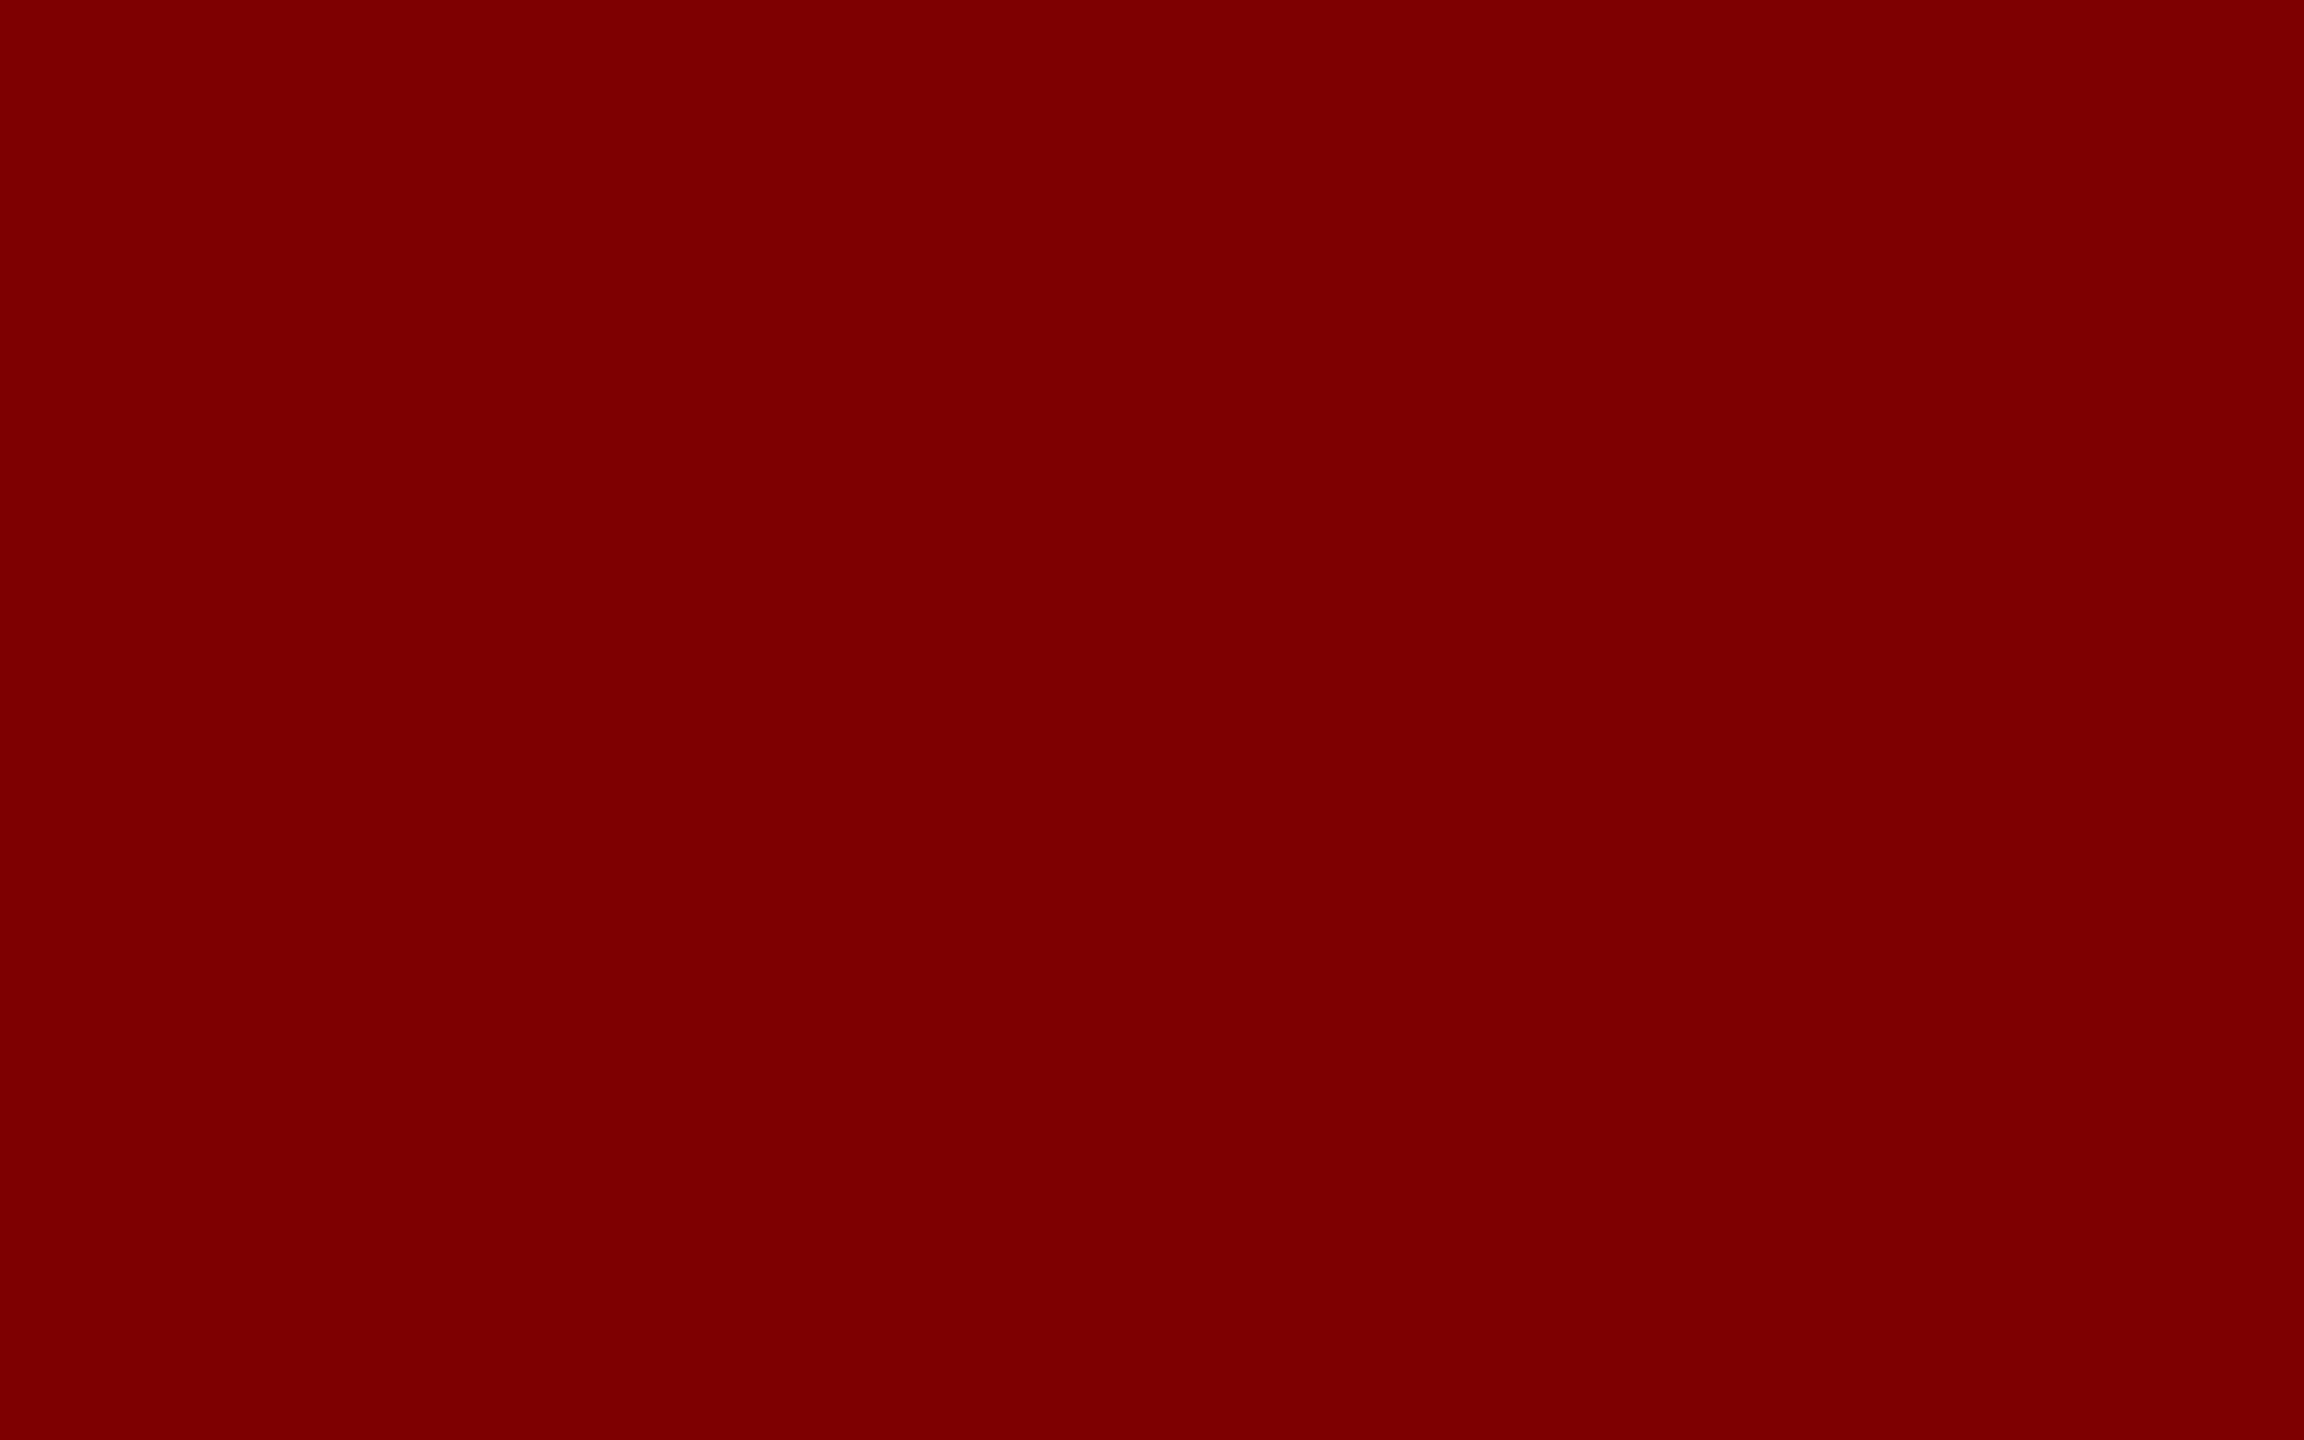 2304x1440 Maroon Web Solid Color Background